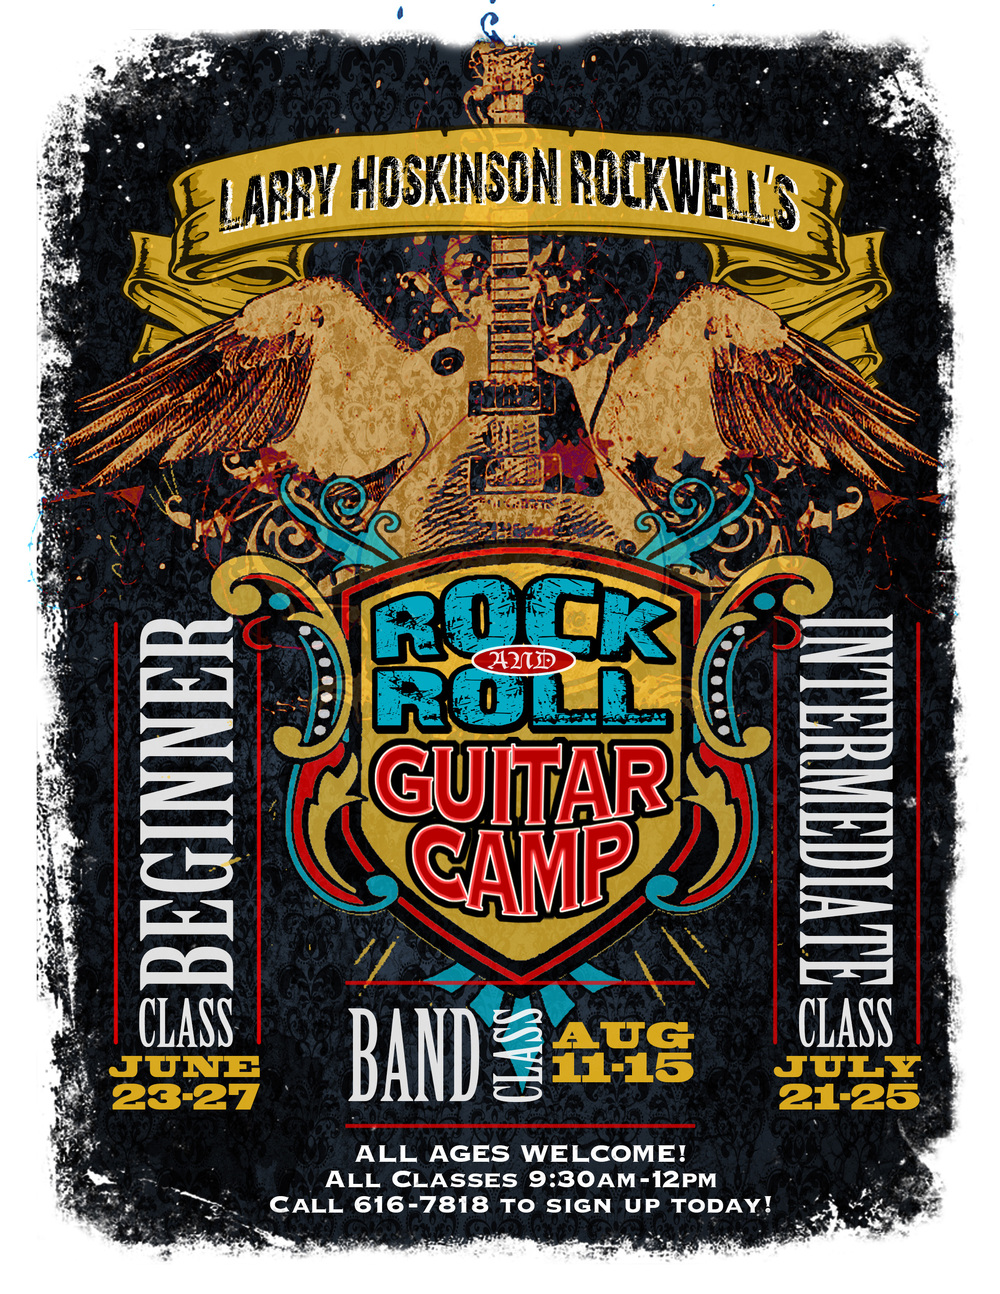 Larry Hoskinson Rockwell's Rock and Roll Guitar Camp Poster